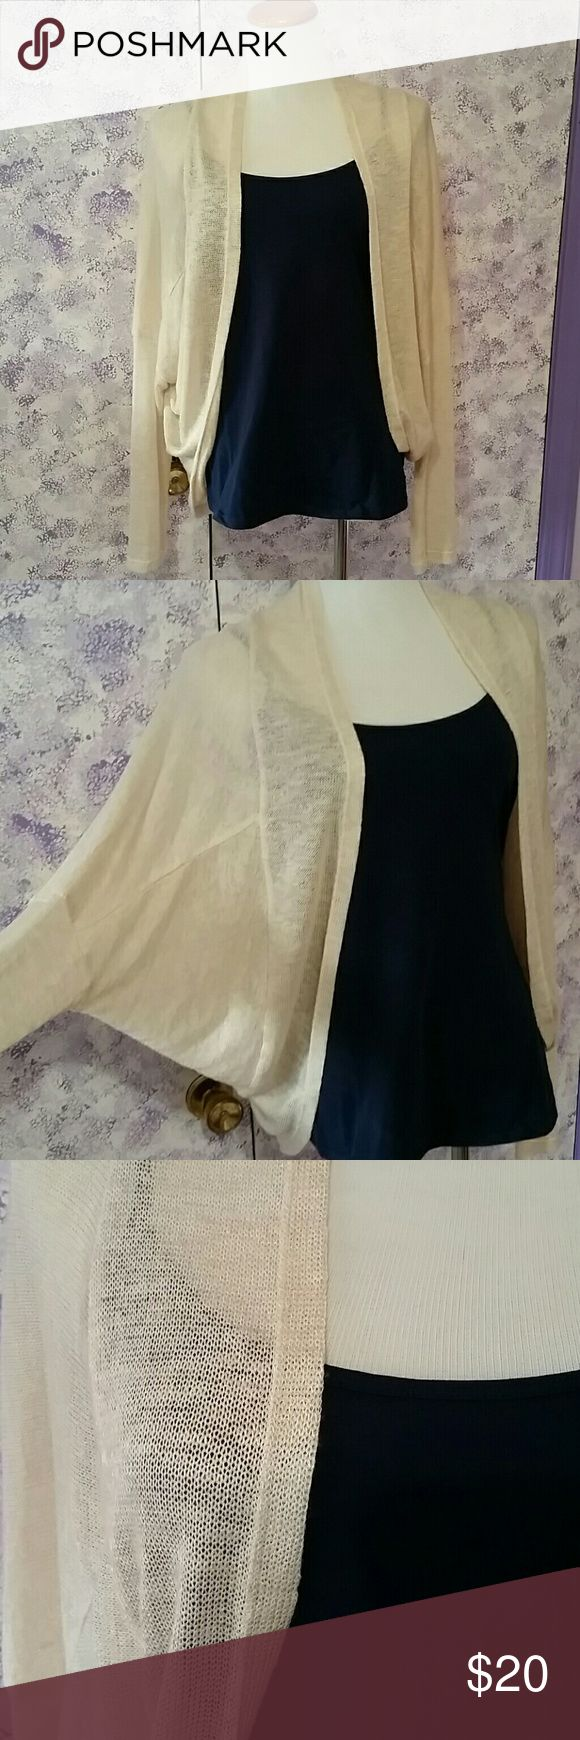 NEW LISTING--Beautiful cream dolman cardigan This is a beautiful dolman sleeved, open-front sweater with an open front. Gorgeous with a navy tank and silver jewelry! Very light weight, small knit, and can easily dress up a pair of jeans.  No snags, holes, tears, stains. NEW WITHOUT TAGS! Apt. 9 Sweaters Cardigans